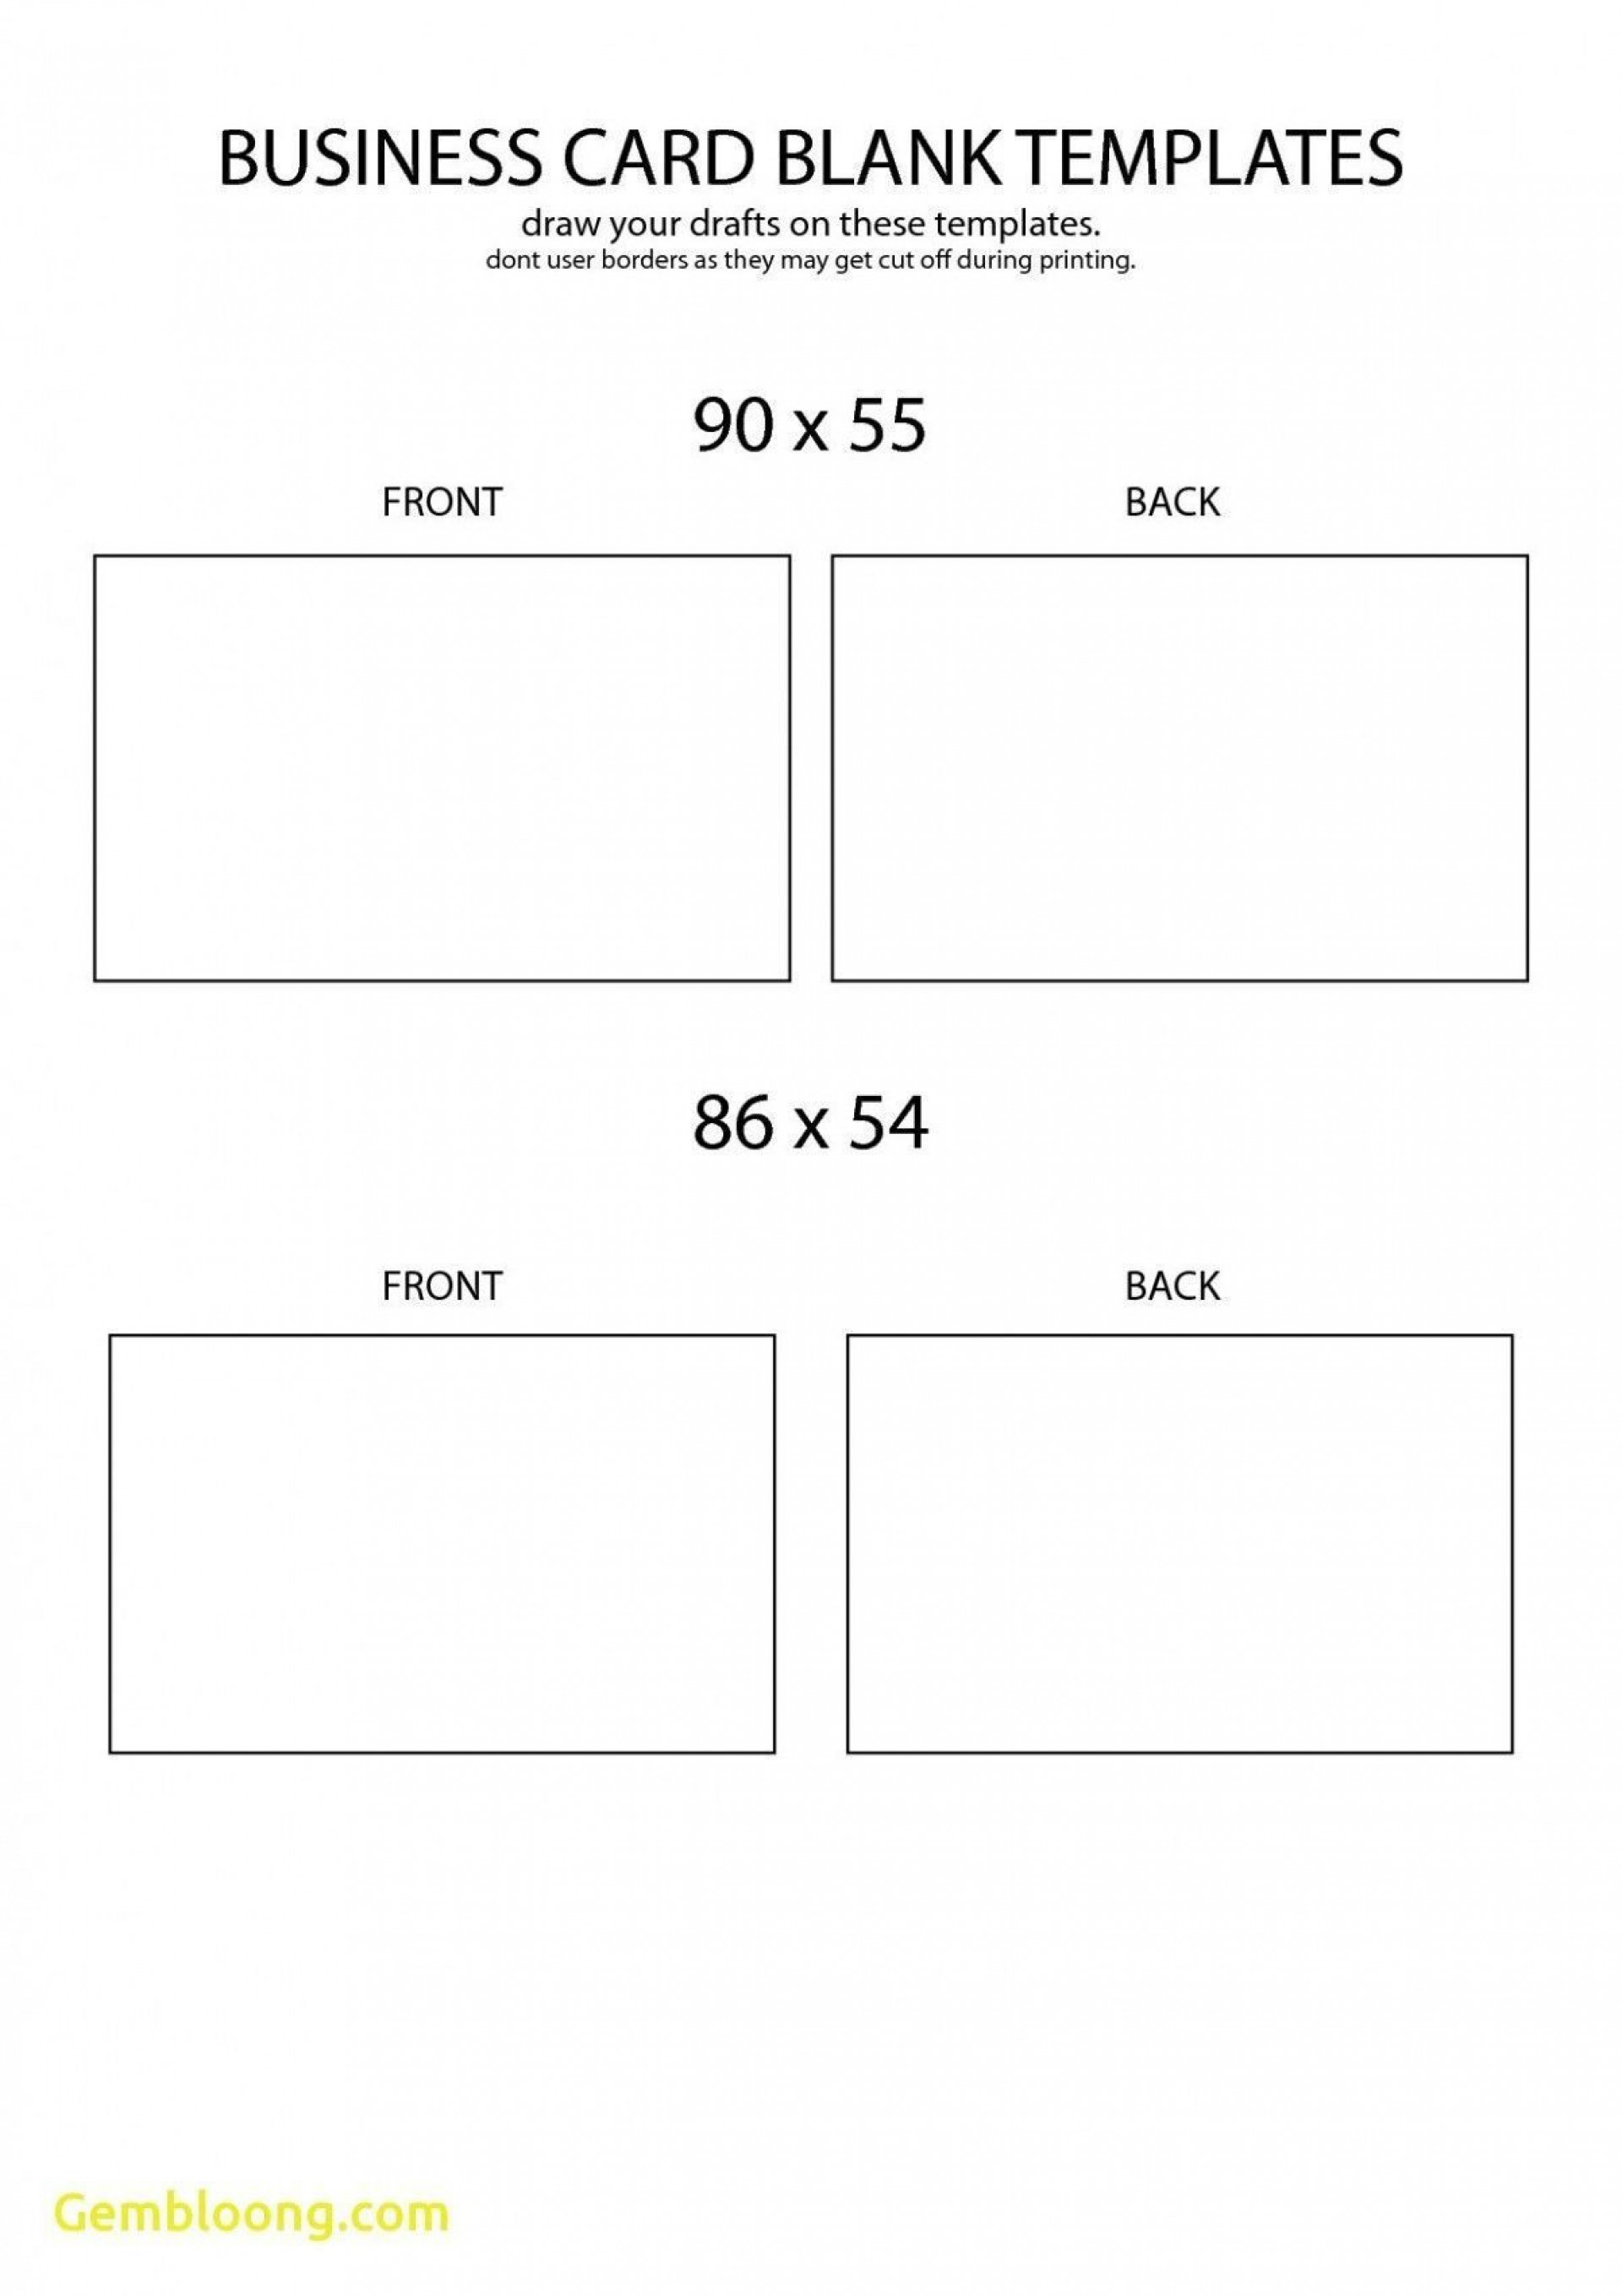 009 Archaicawful Staple Busines Card Template Psd Highest Clarity 1920